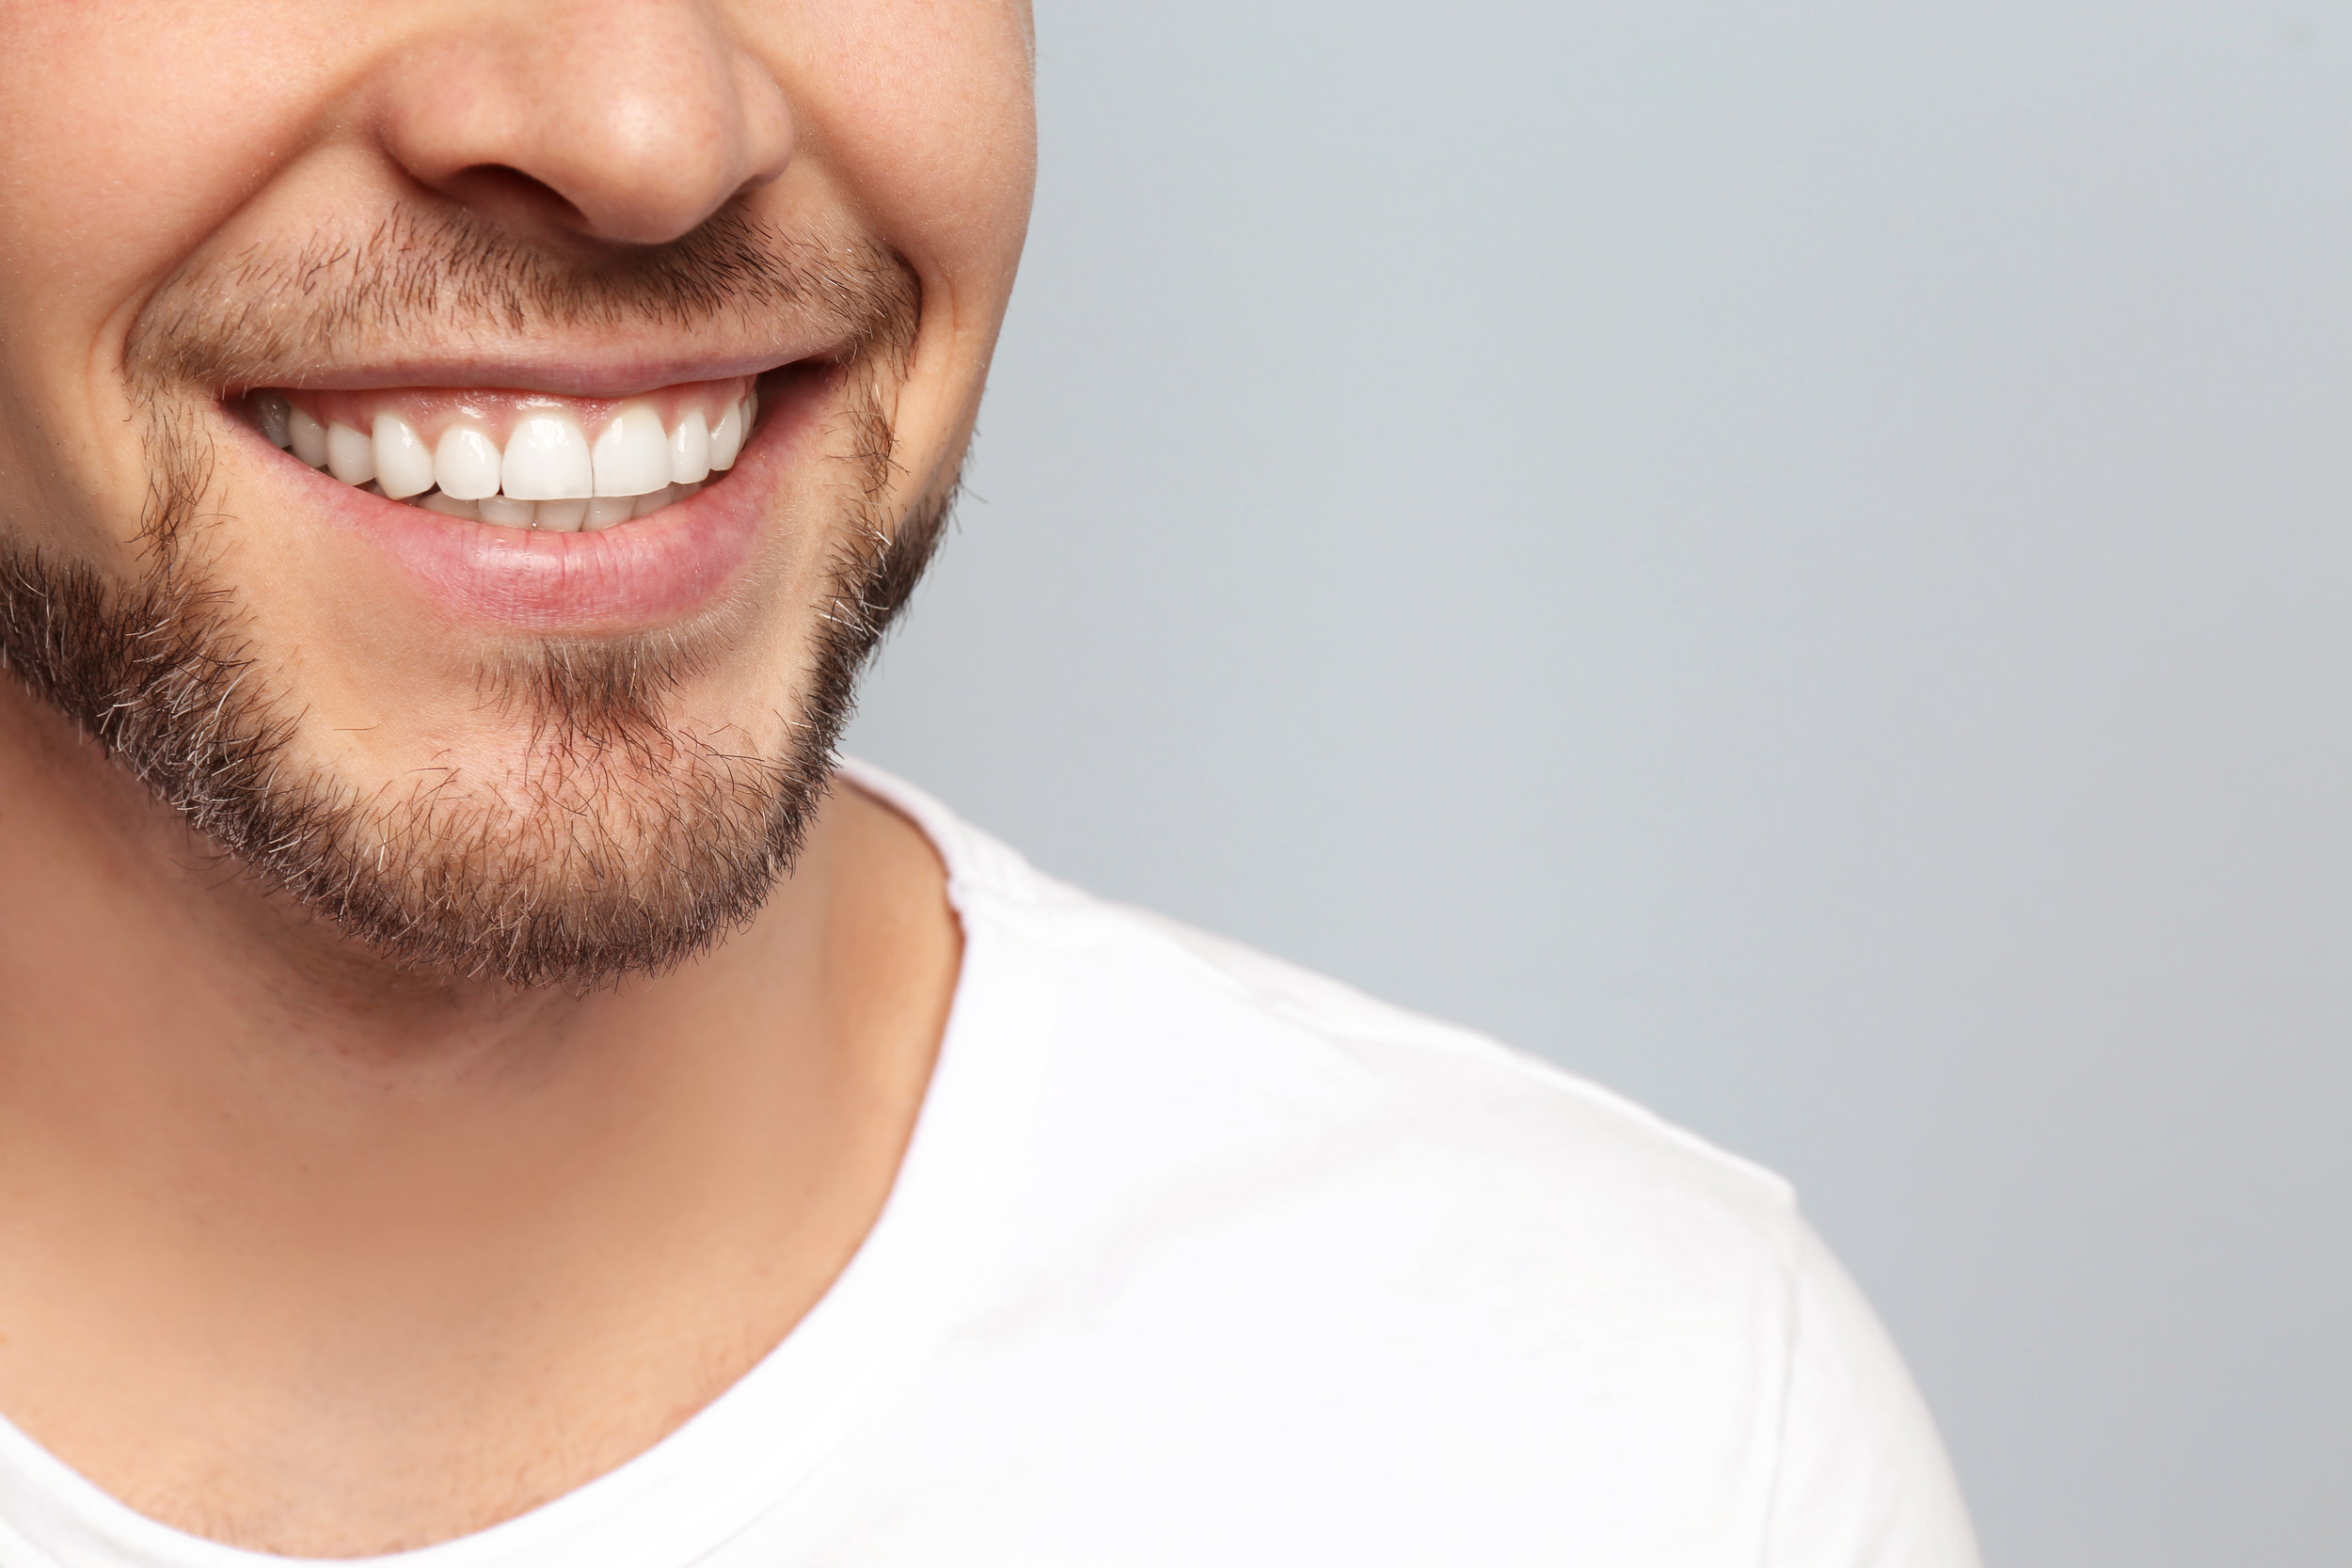 Cosmetic Dentistry - From teeth whitening to Invisalign treatments, Dr. Shane Whisenant and his staff can transform your smile and help you achieve your oral health goals. →